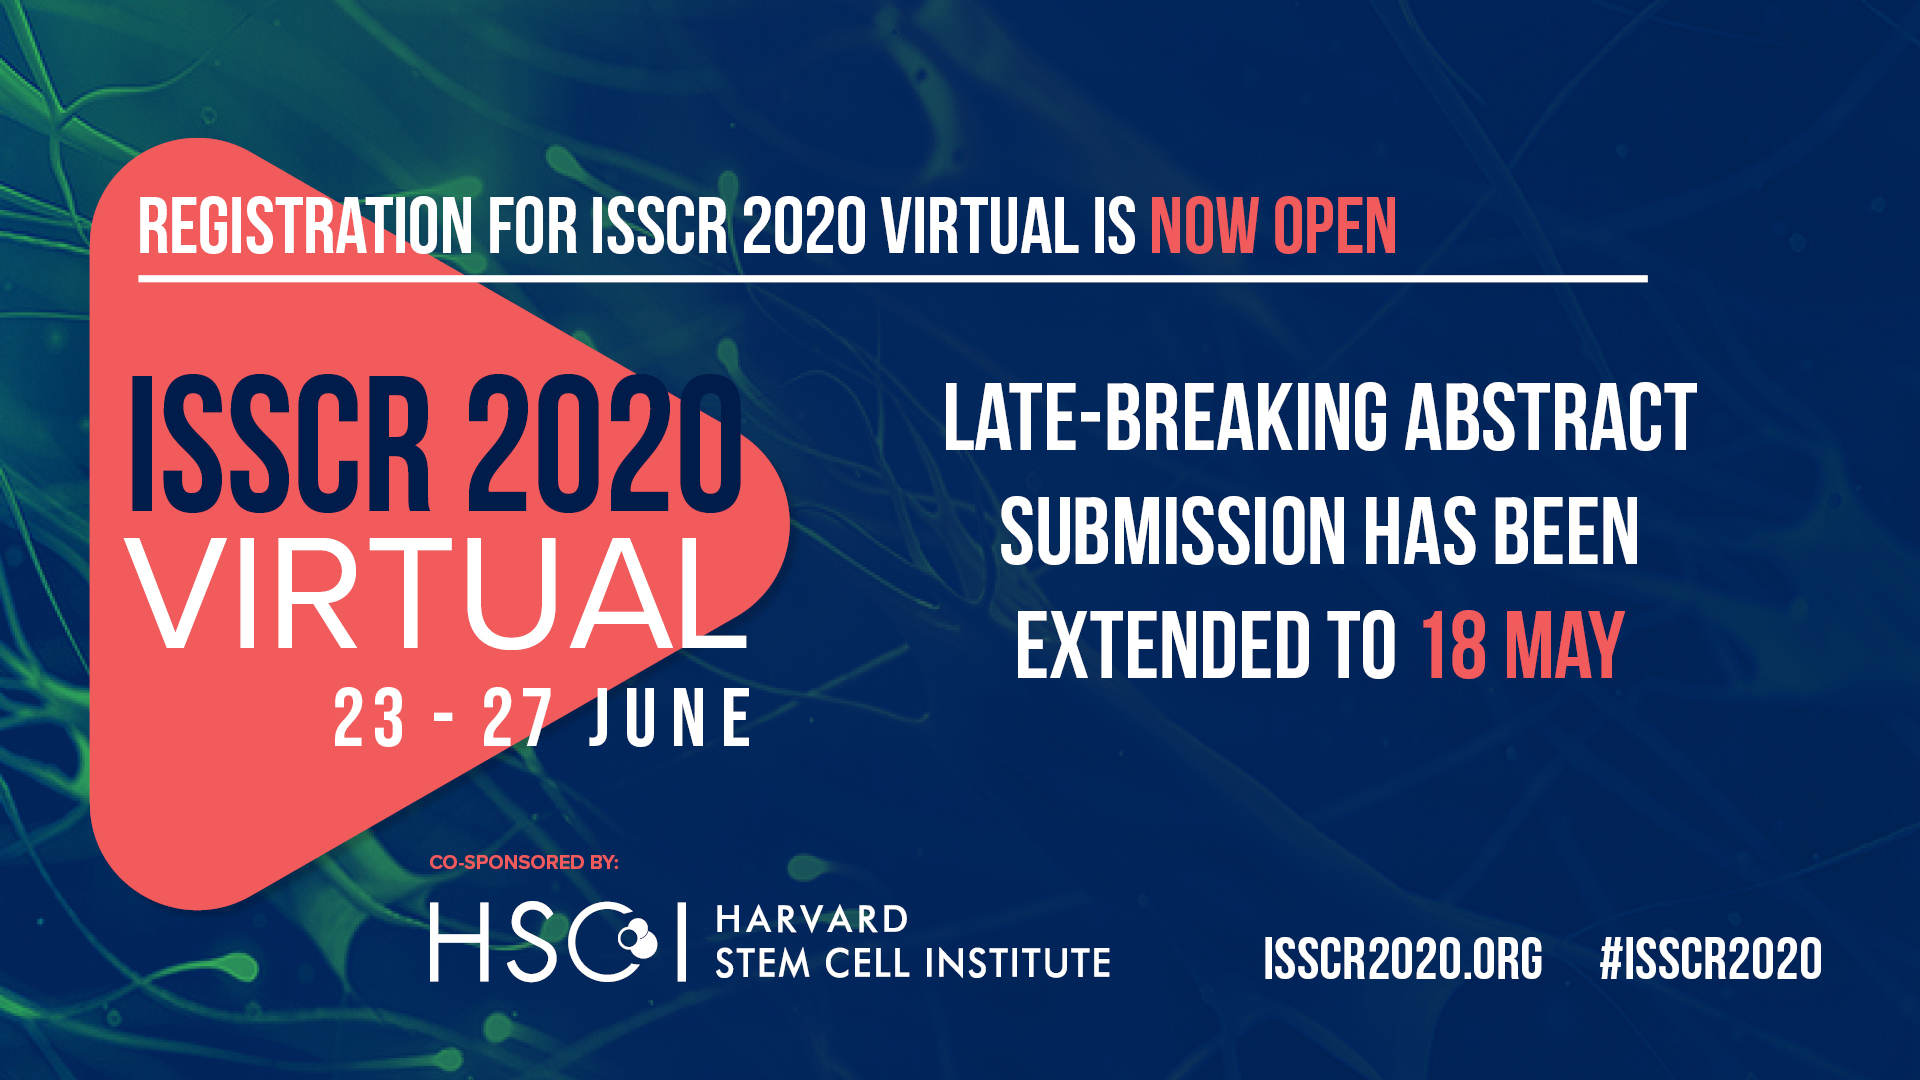 ISSCR_Virtual_PPT_May18